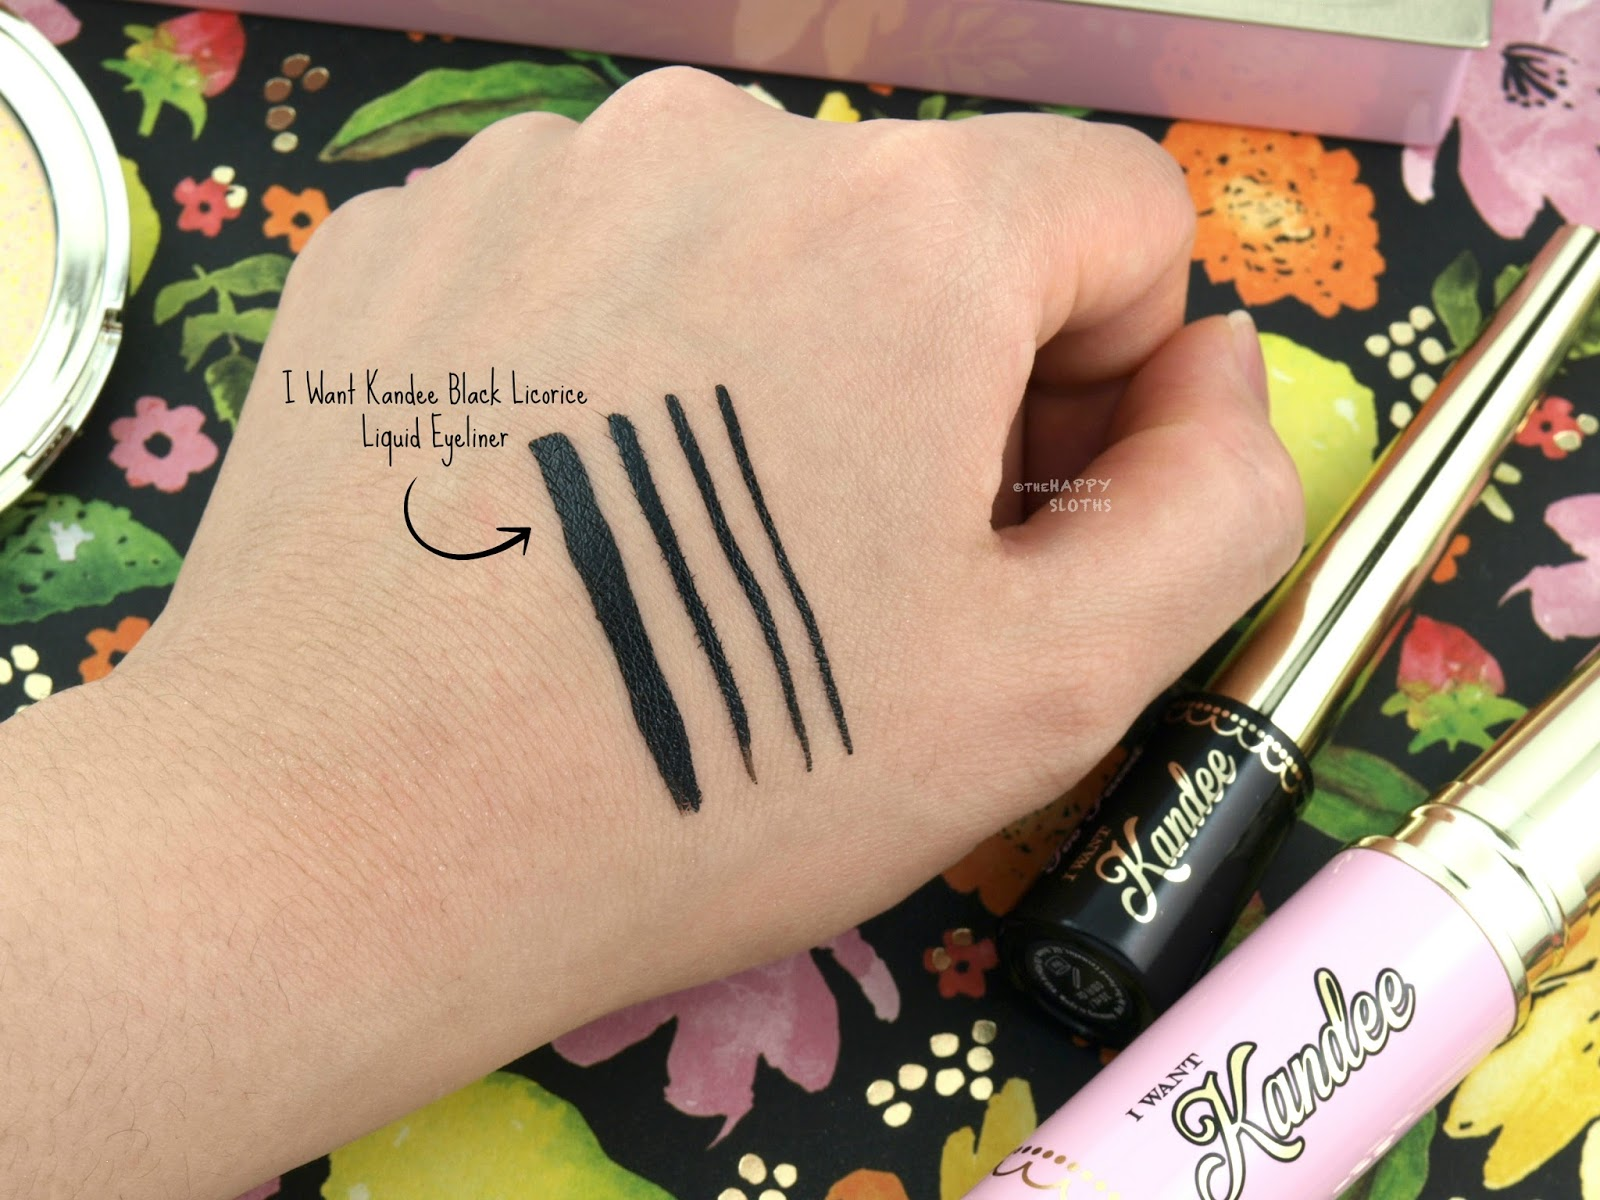 Too Faced x Kandee Johnson | I Want Kandee Candy Liner Black Licorice Liquid Eyeliner: Review and Swatches